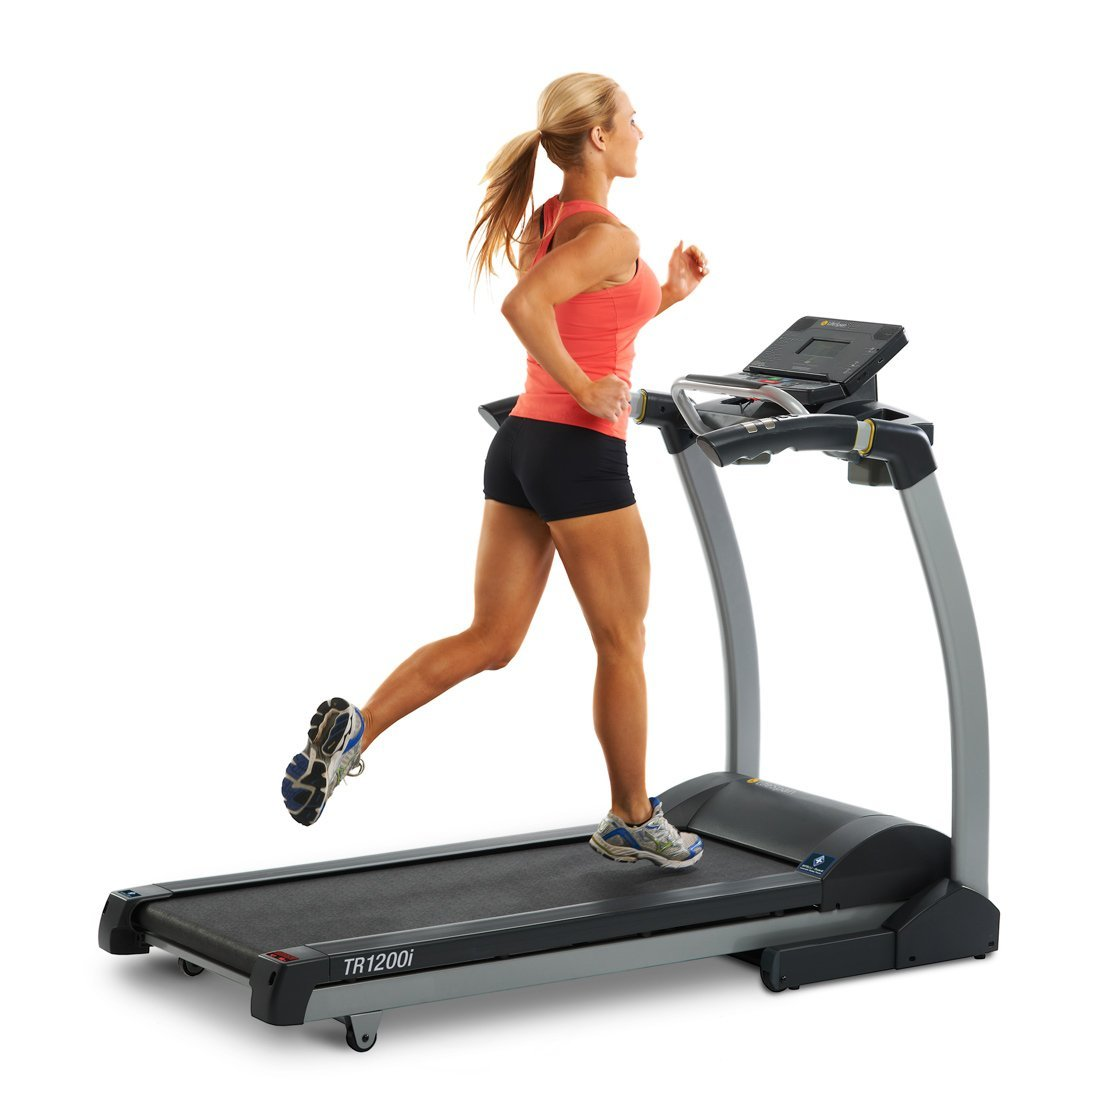 LifeSpan TR 1200i Folding Treadmill Review